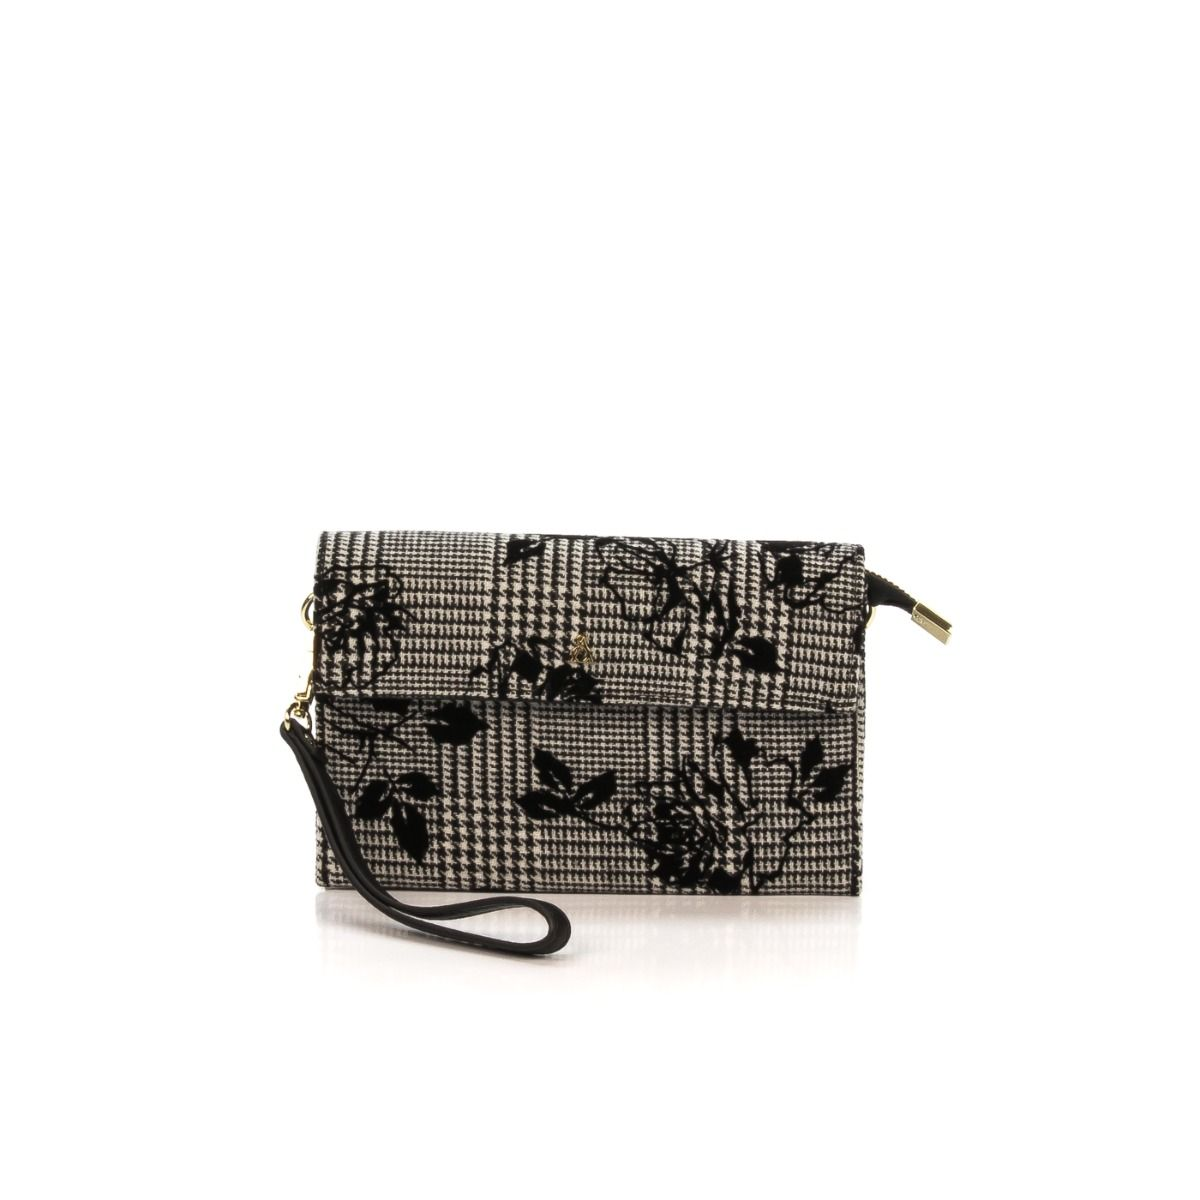 b371477642 Pochette donna|PASH BAG BY L'ATELIER DU SAC 8348 LE VIE EN ROSE tessuto  nero fantasia|Shop online|Shoe Center